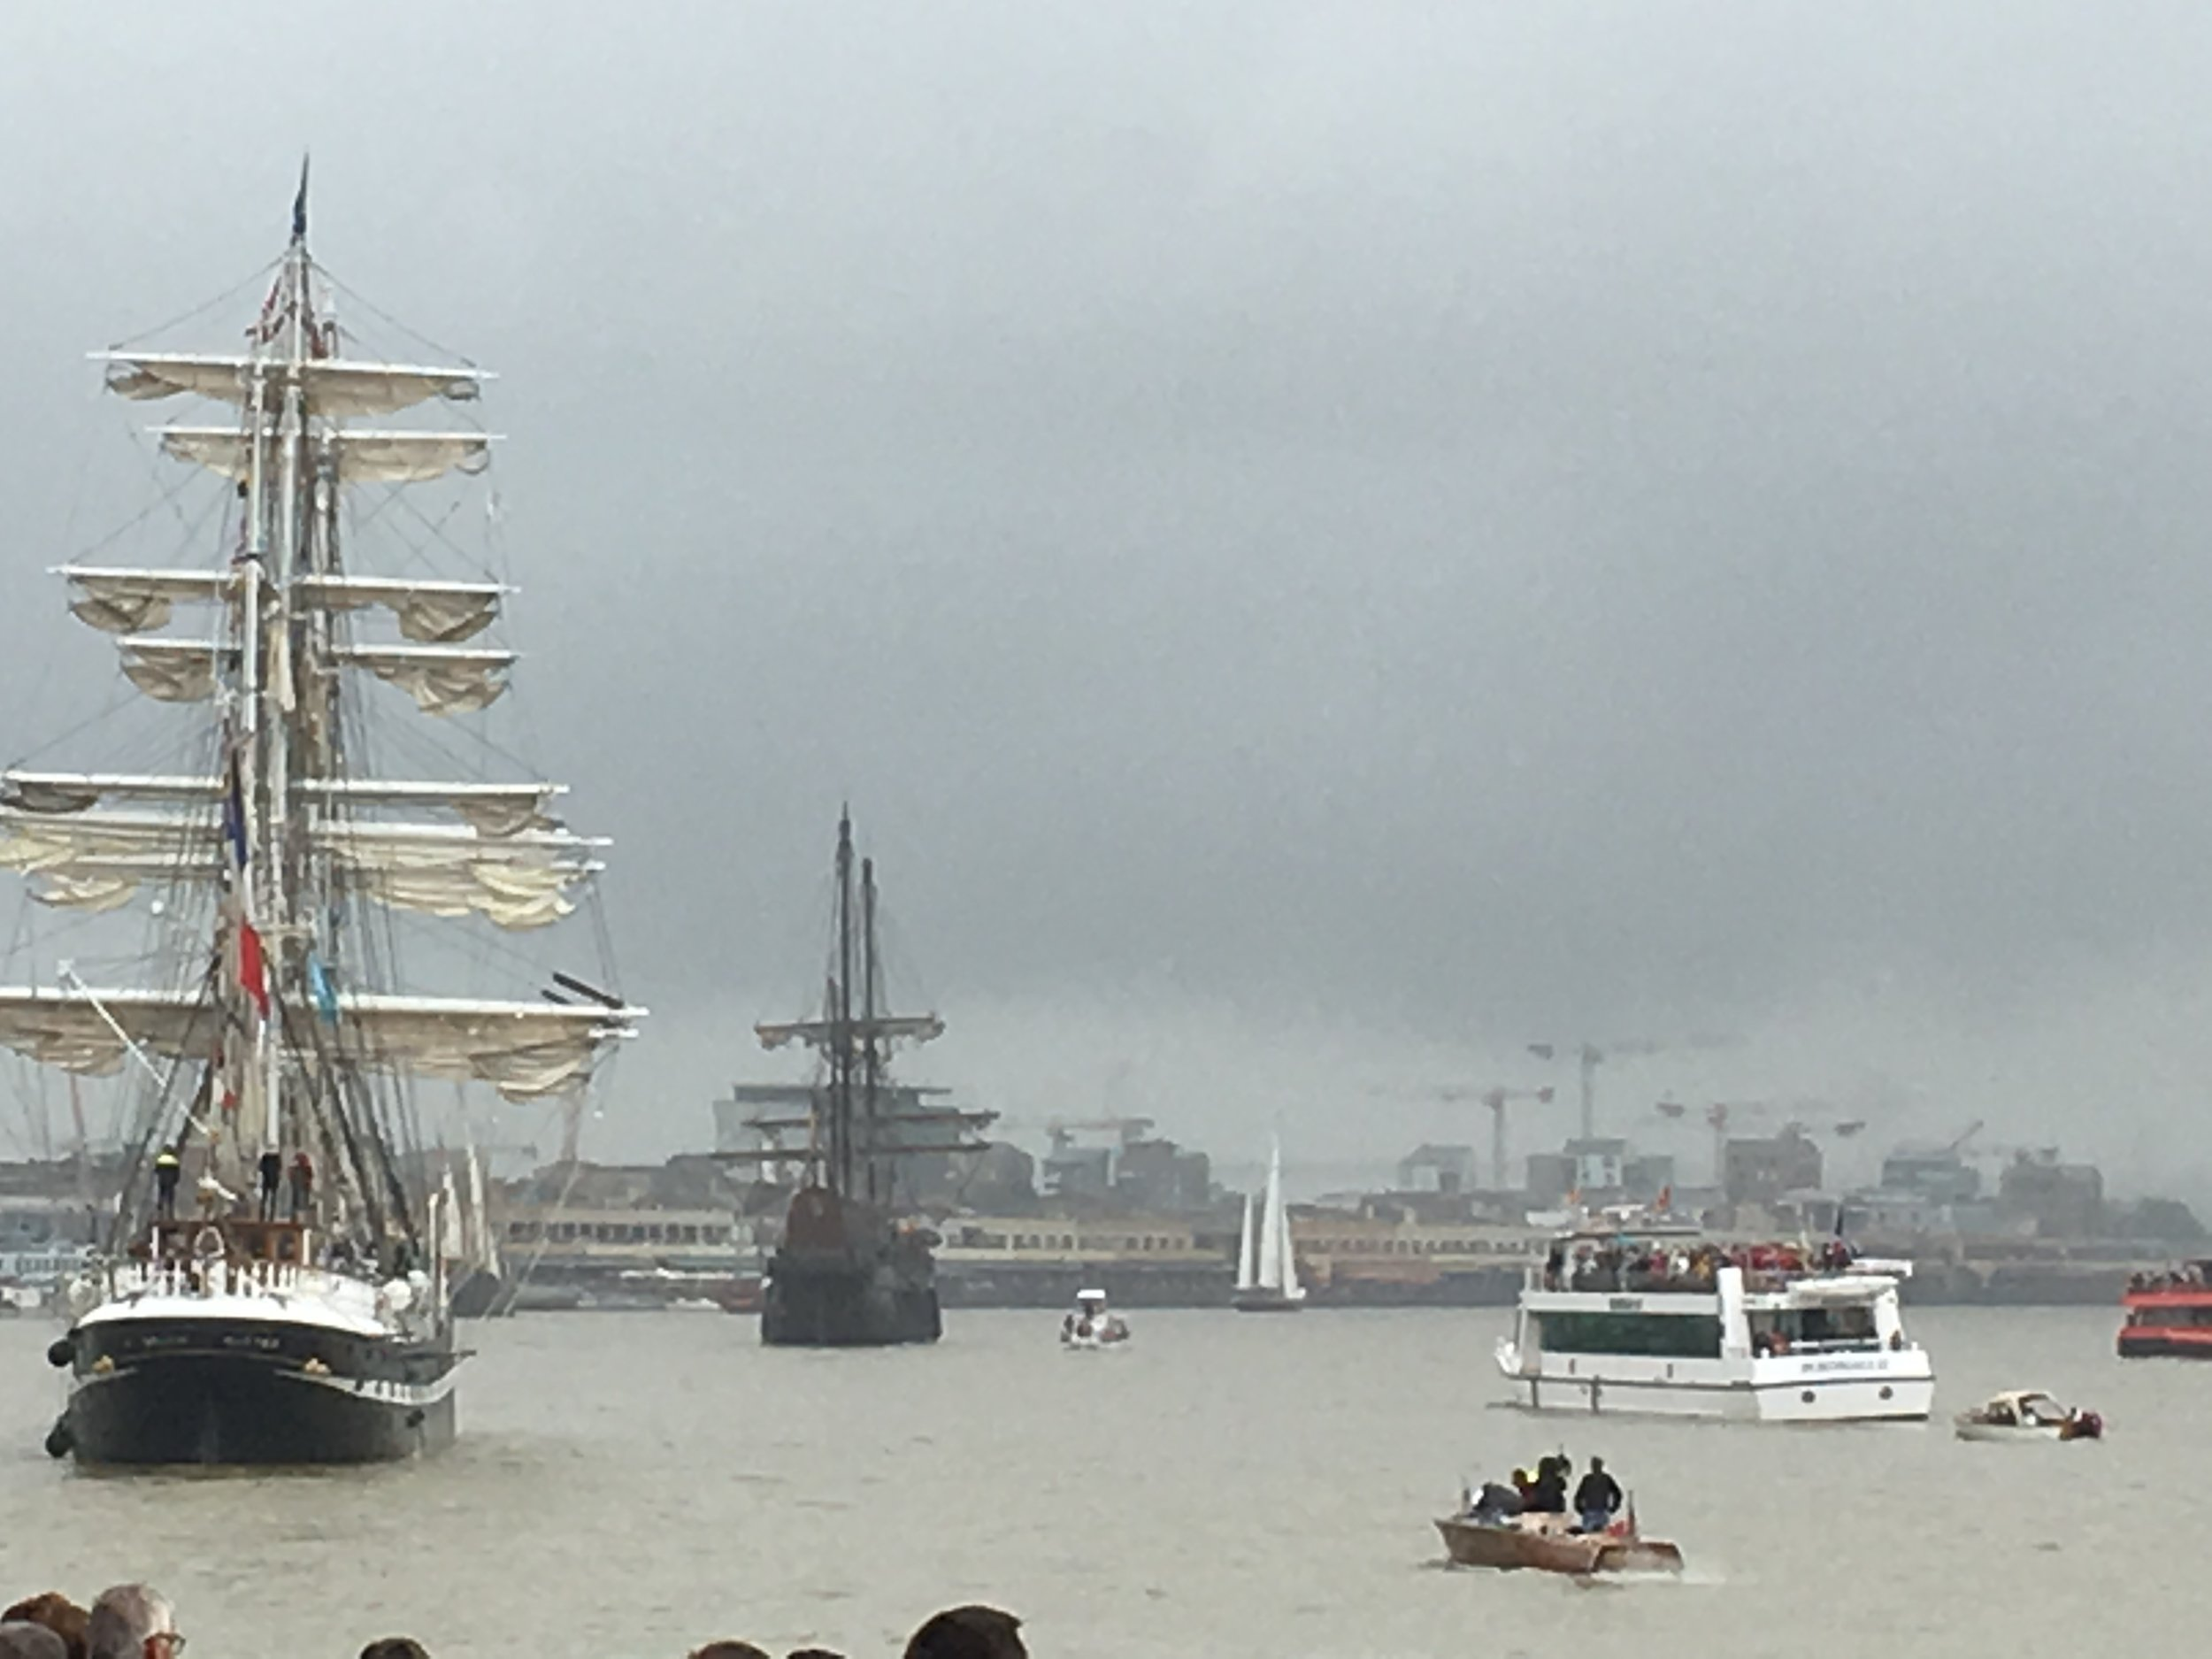 The masted ships leaving quai in Bordeaux marking the end of the wine festival